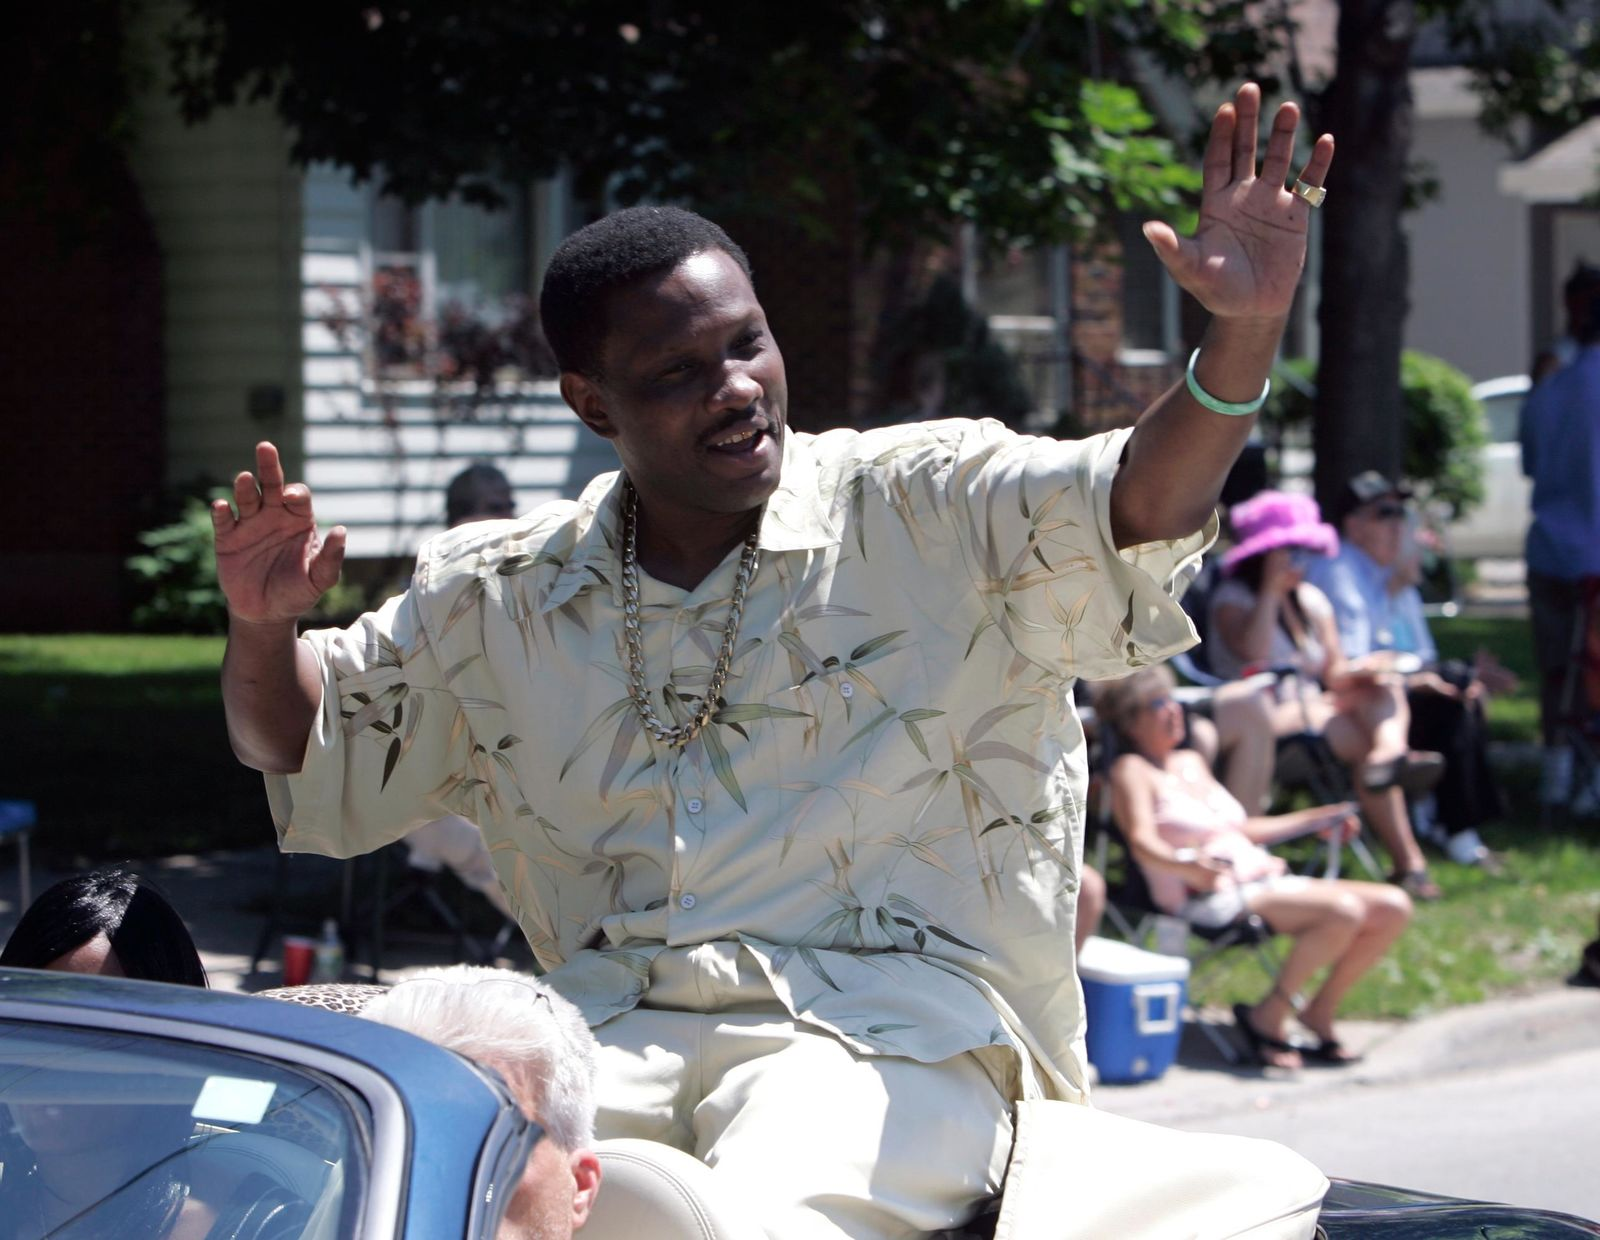 FILE - In this June 10, 2007, file photo, Pernell Whitaker waves to the crowd during a parade before he was inducted into the International Boxing Hall of Fame in Canastota, N.Y.. (AP Photo/Mike Groll, File)